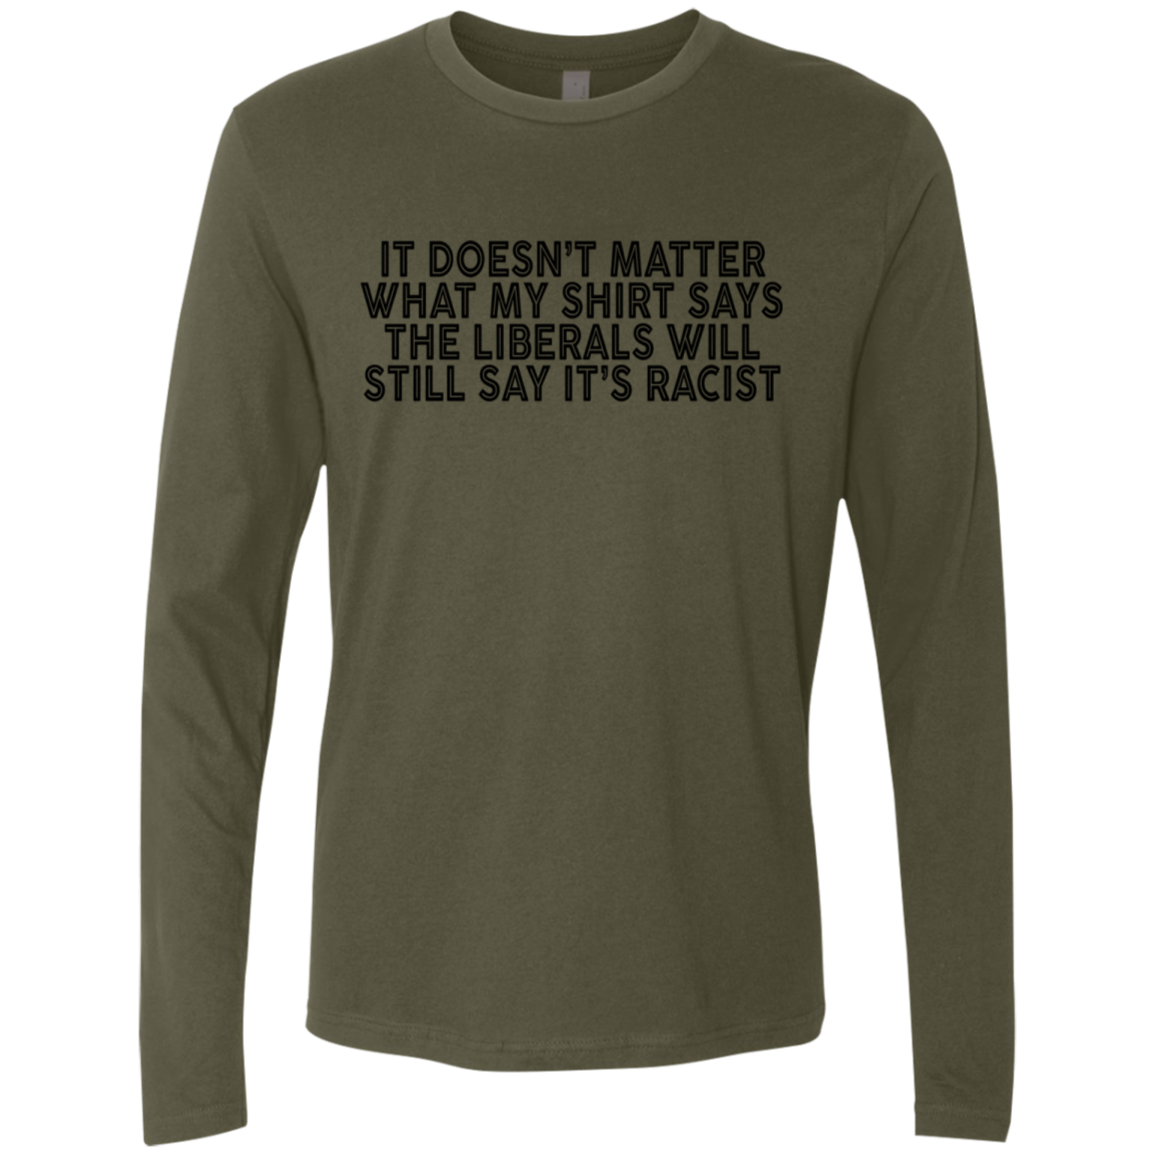 It's Doesn't Matter What My Shirt says The Liberals Will Still Say It's Racist Men's Long Sleeve Tee